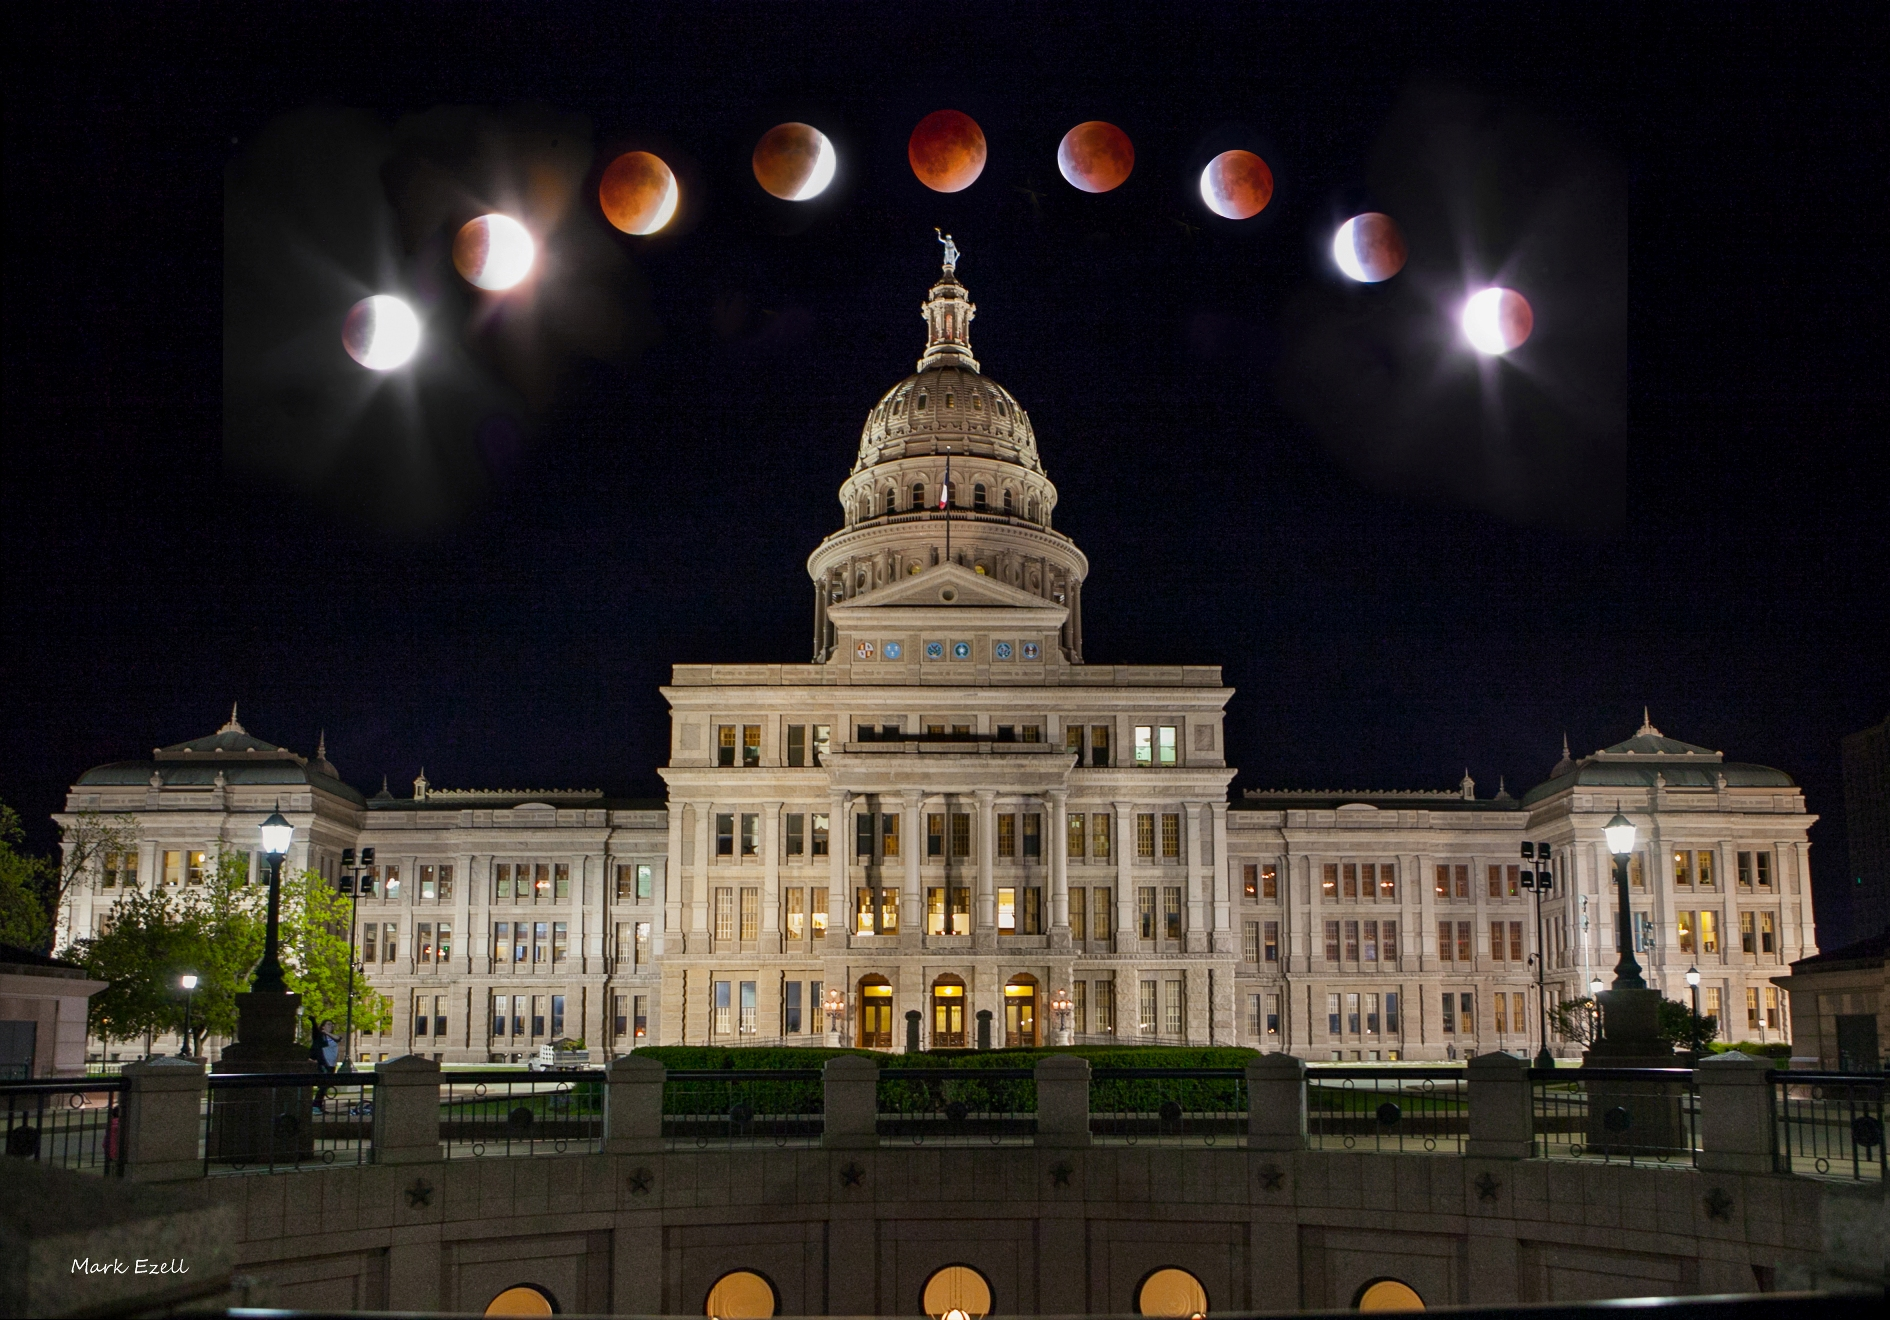 Blood Moon: Lunar Eclipse Phases Over Texas Capitol Building (Photo)